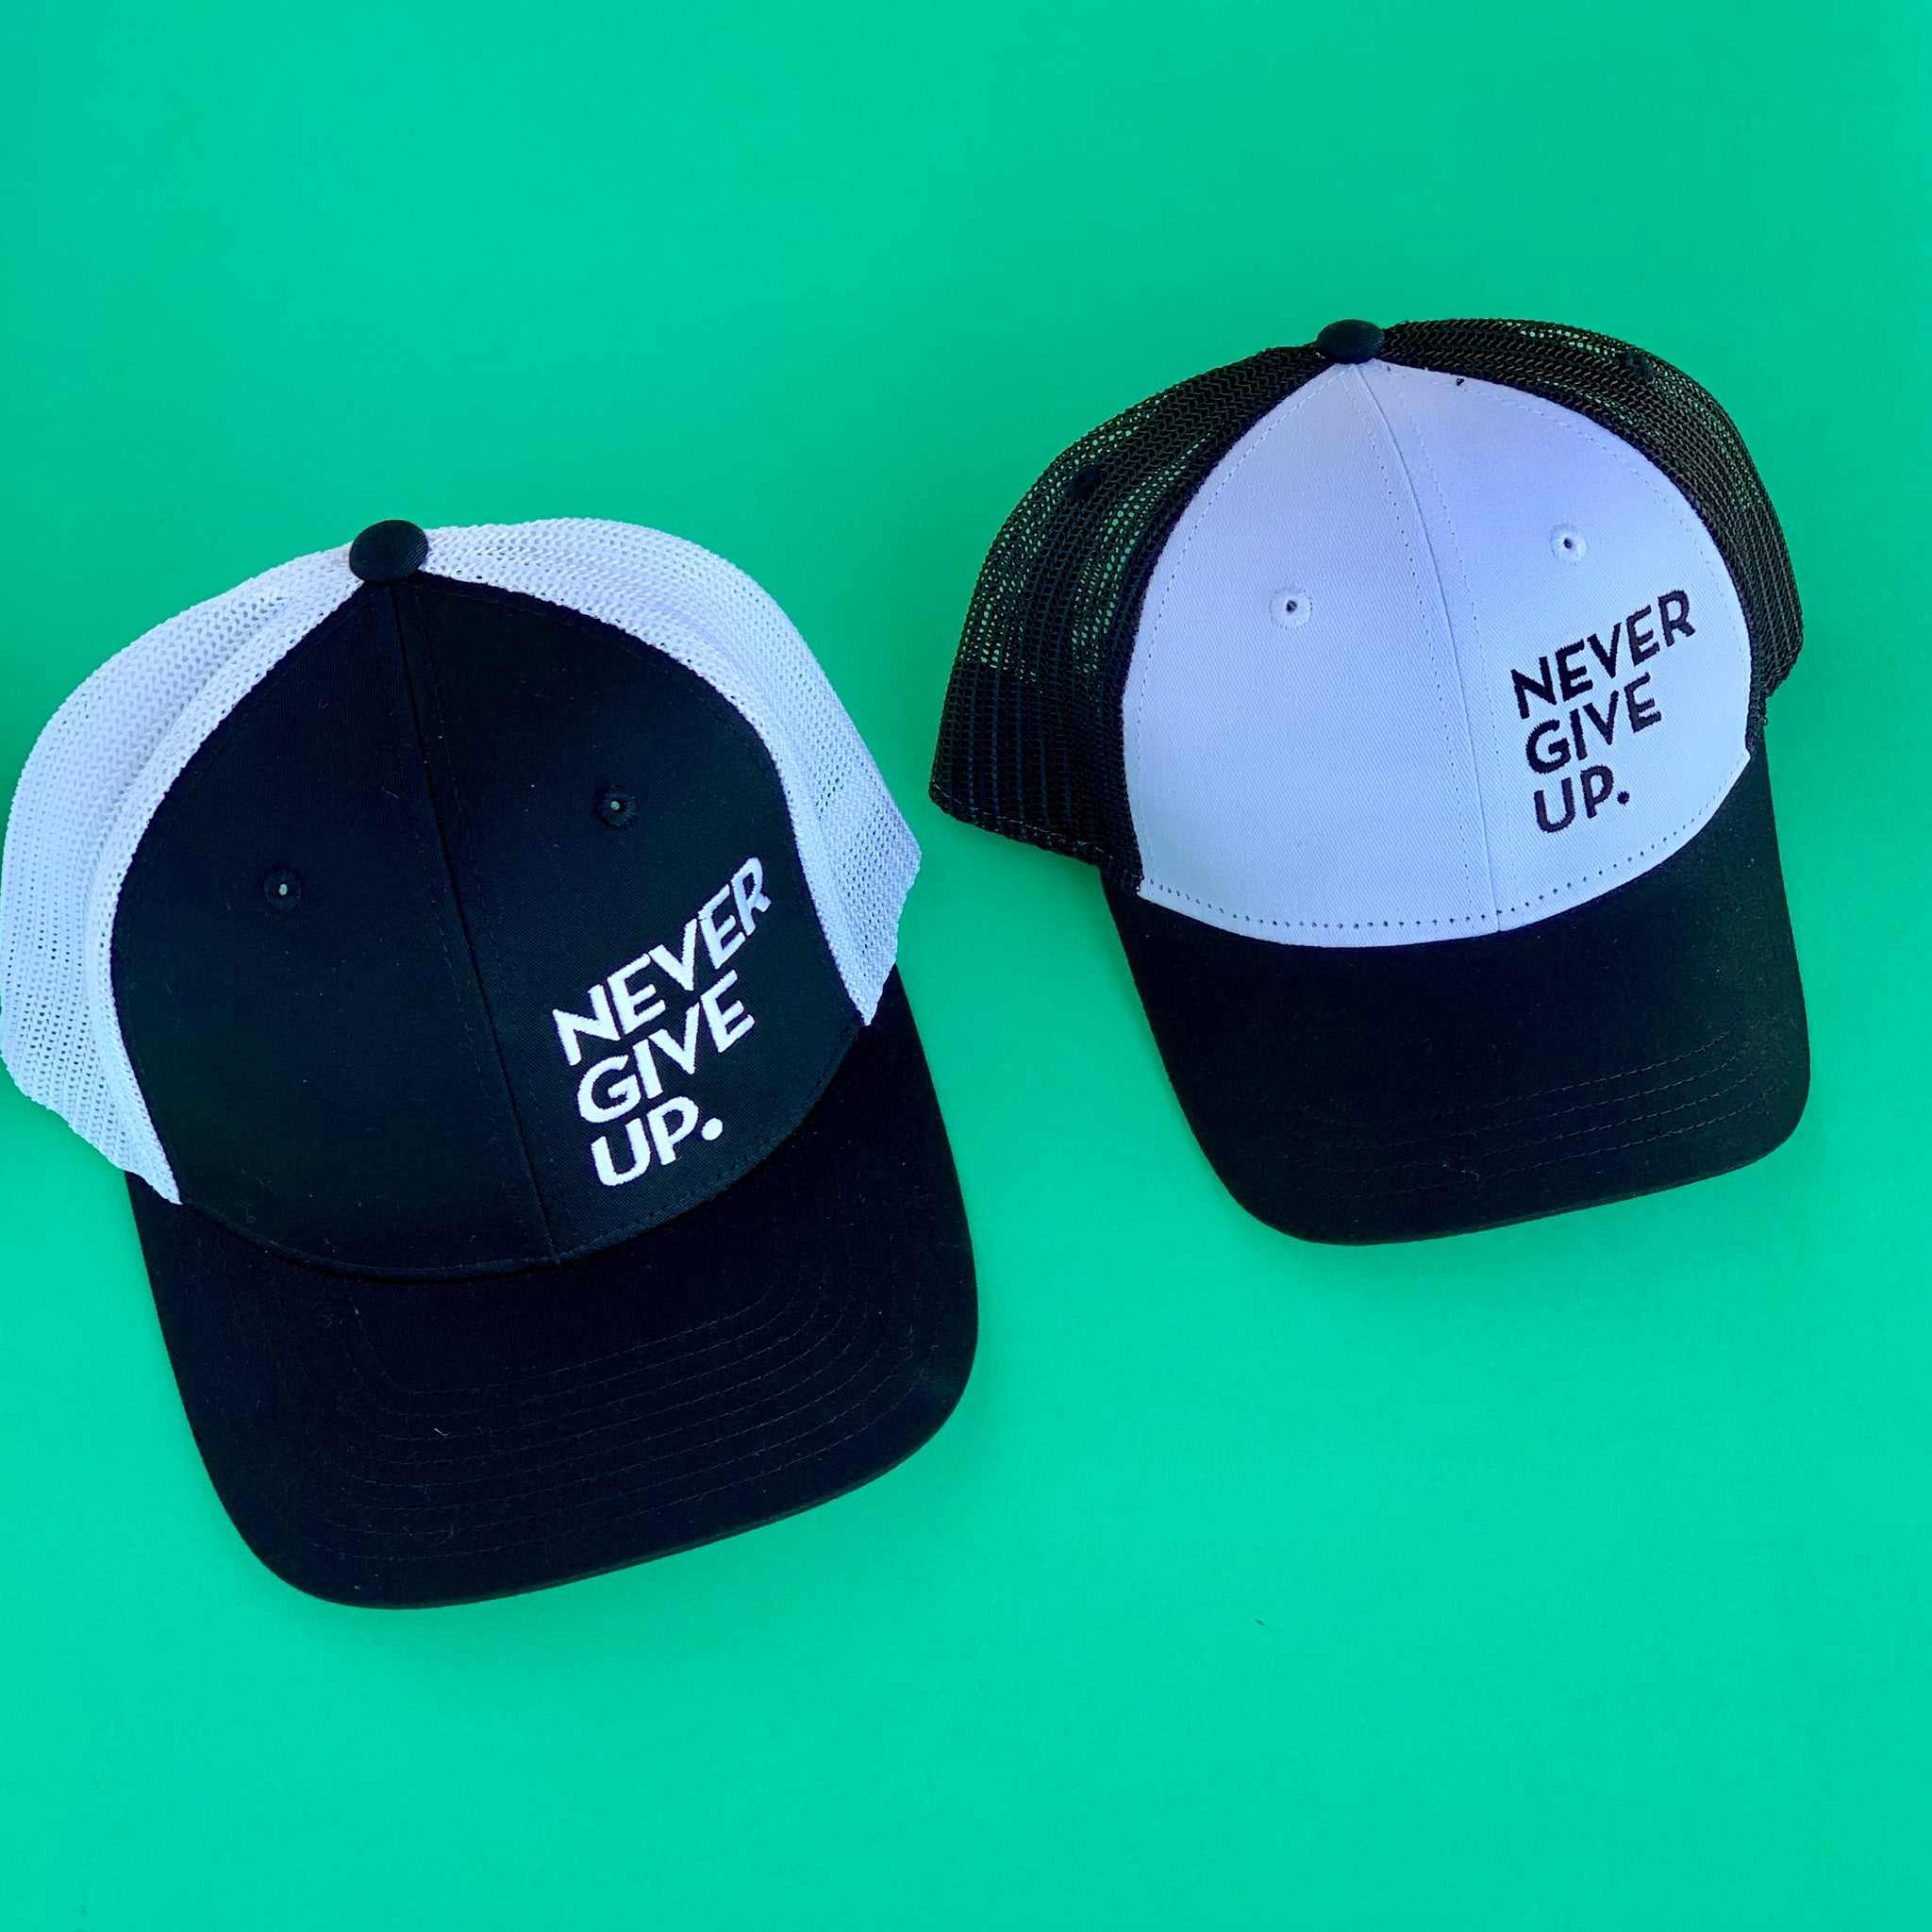 KIDS NEVER GIVE UP. HAT (White/Black)